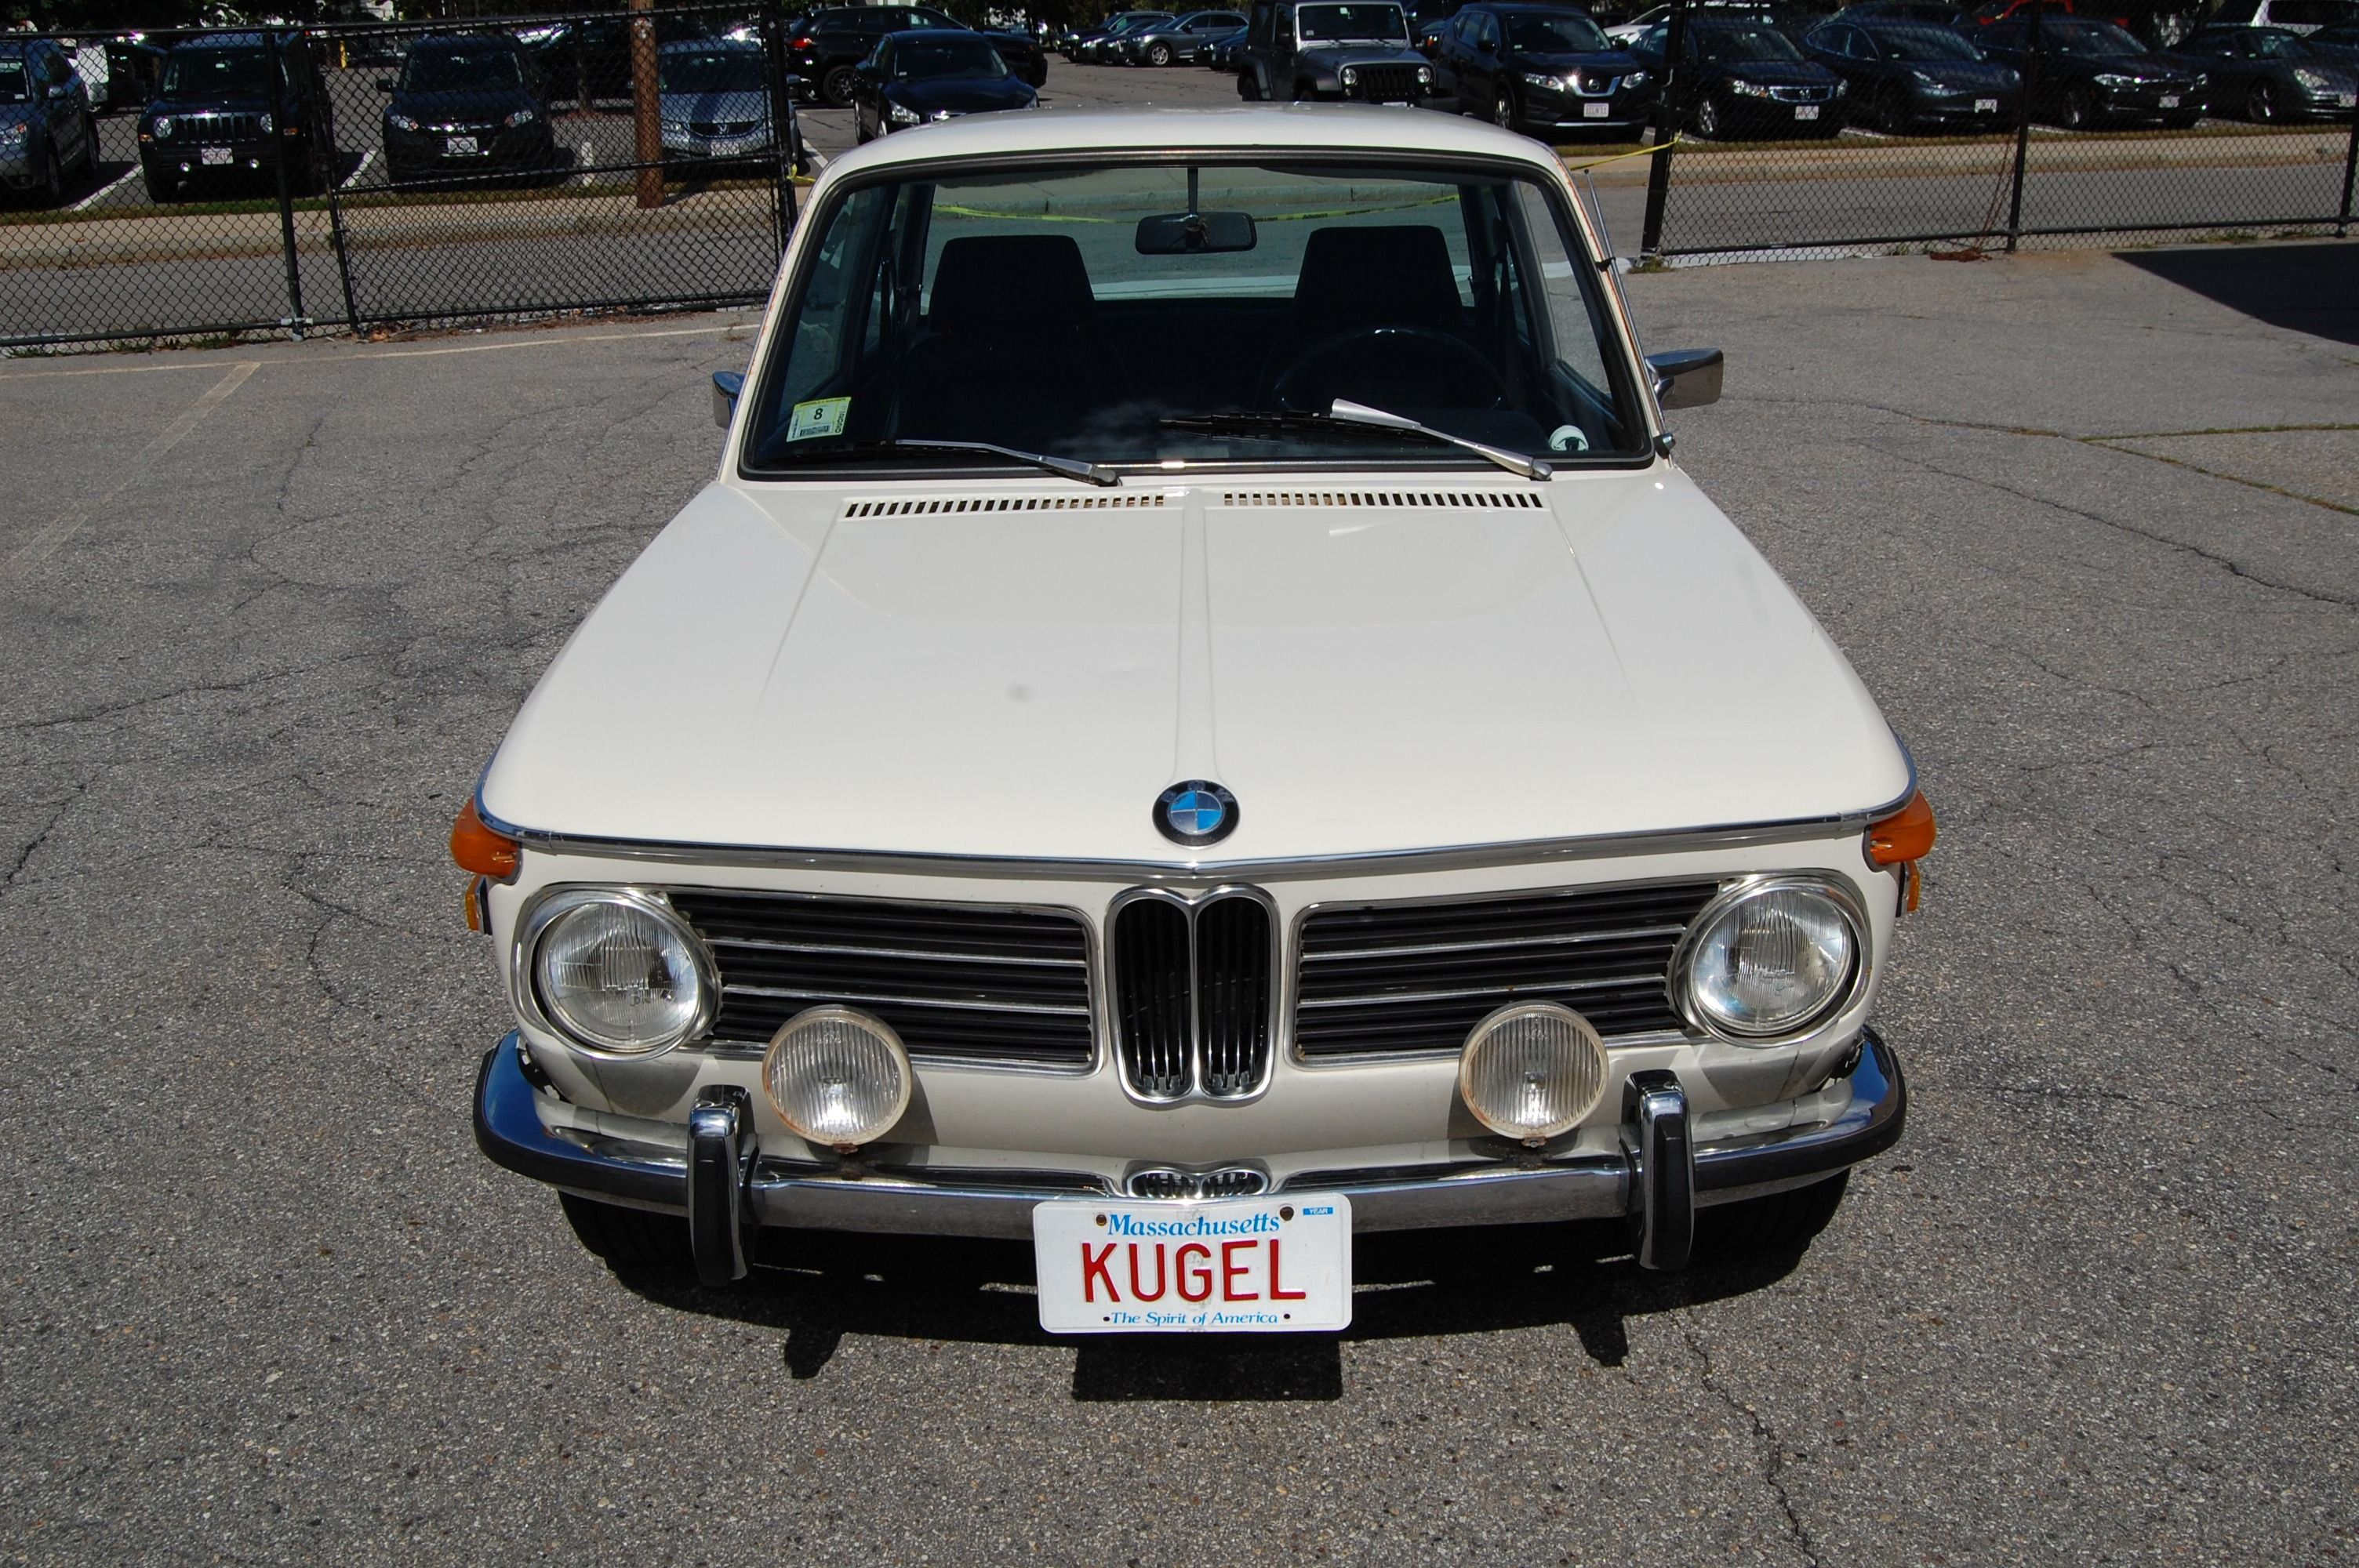 Pin By Janustoo James On Bmw Bmw Classic Cars Kugel